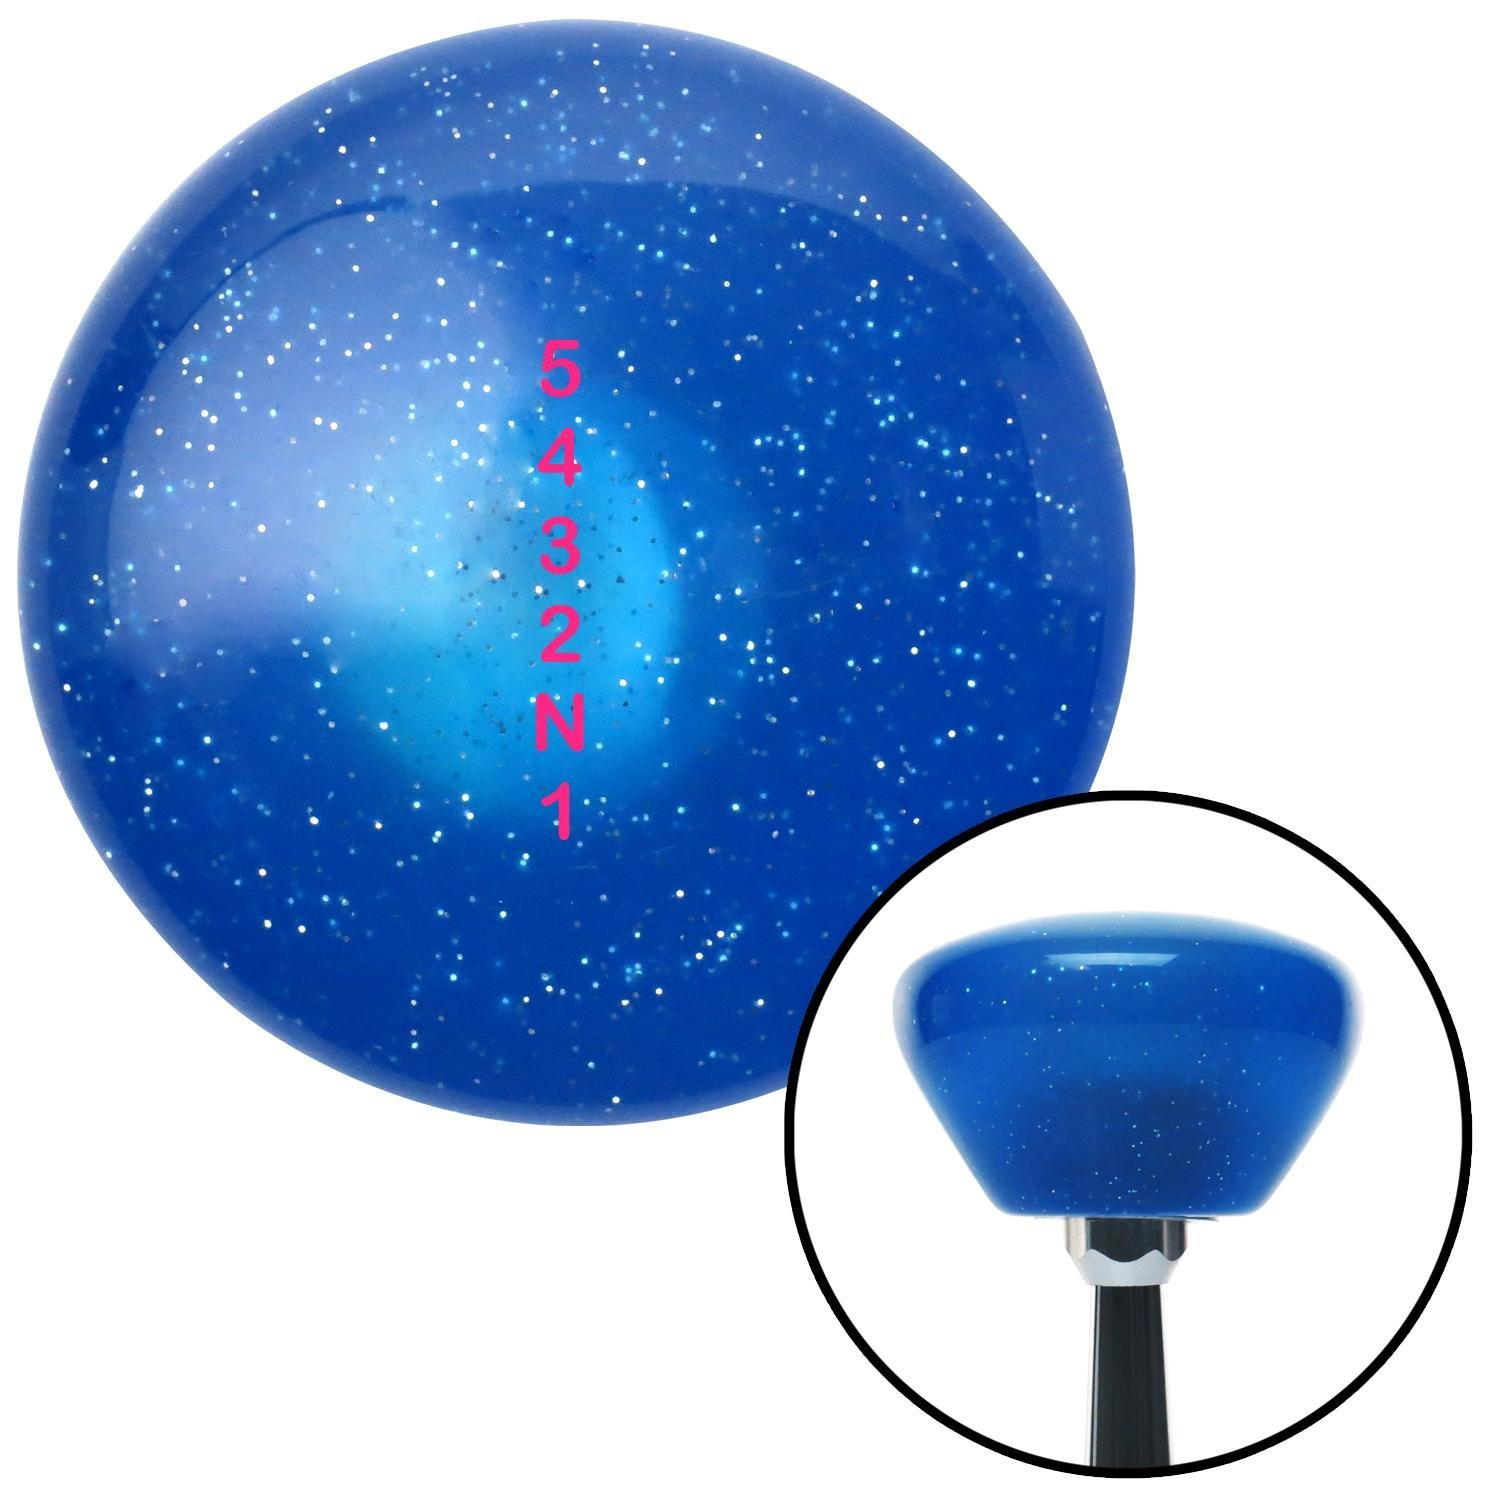 American Shifter 192085 Blue Retro Metal Flake Shift Knob with M16 x 1.5 Insert Pink Shift Pattern 59n